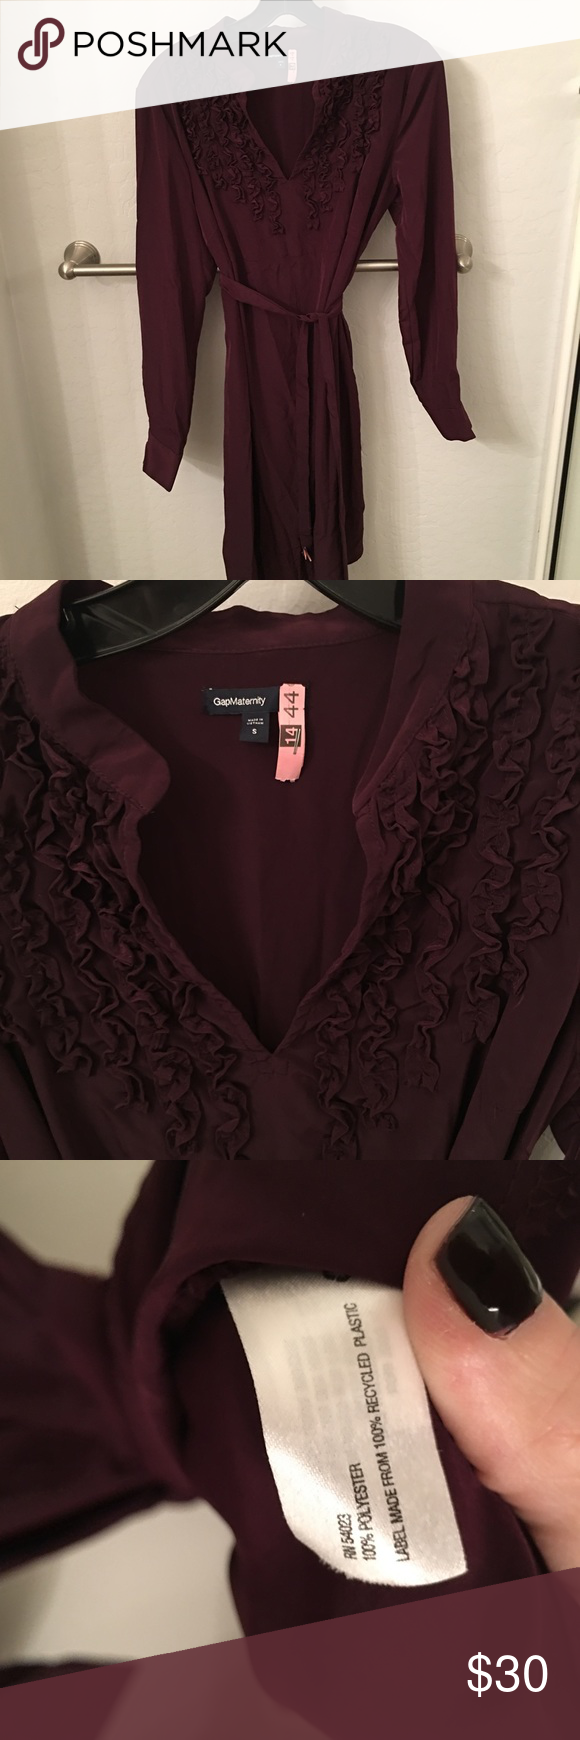 GAP Maternity Shirt Dress Maroon GAP Maternity long-sleeve shirt dress with tie waist. Perfect for work and great with rights. Ruffle accent around neckline. Worn only a few times. Excellent condition. GAP Other